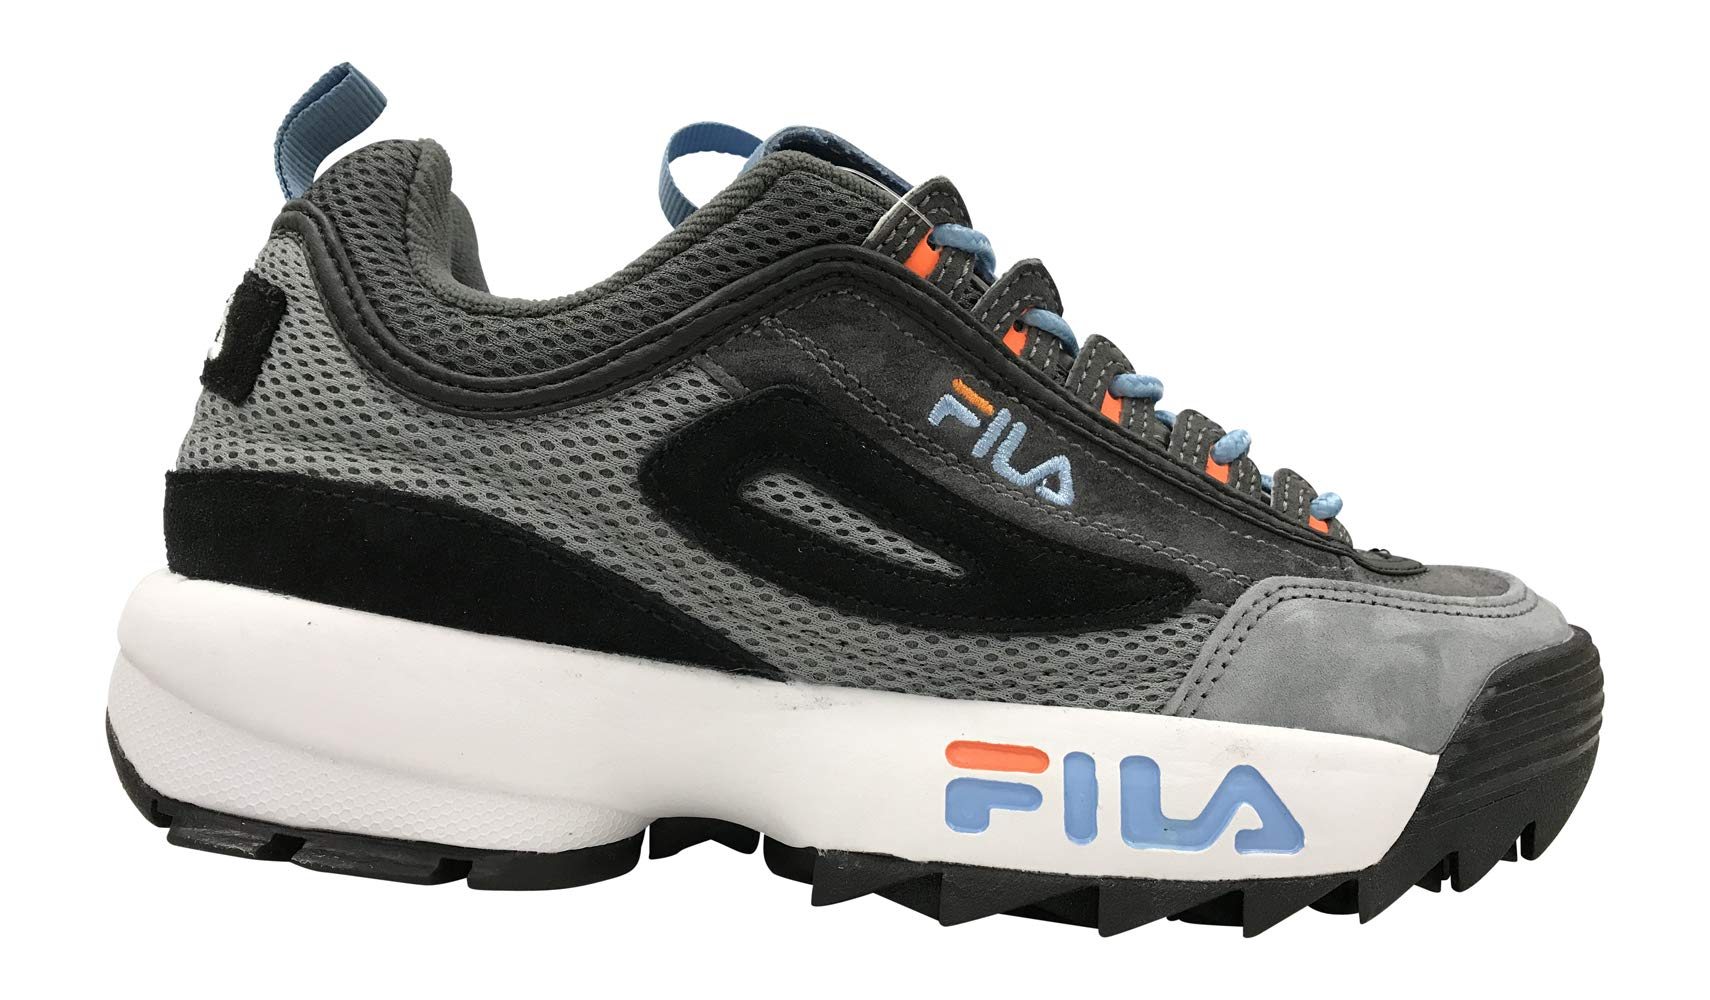 b0988a046601 Galleon - Fila Men s Disruptor 2 Fashion Sneaker